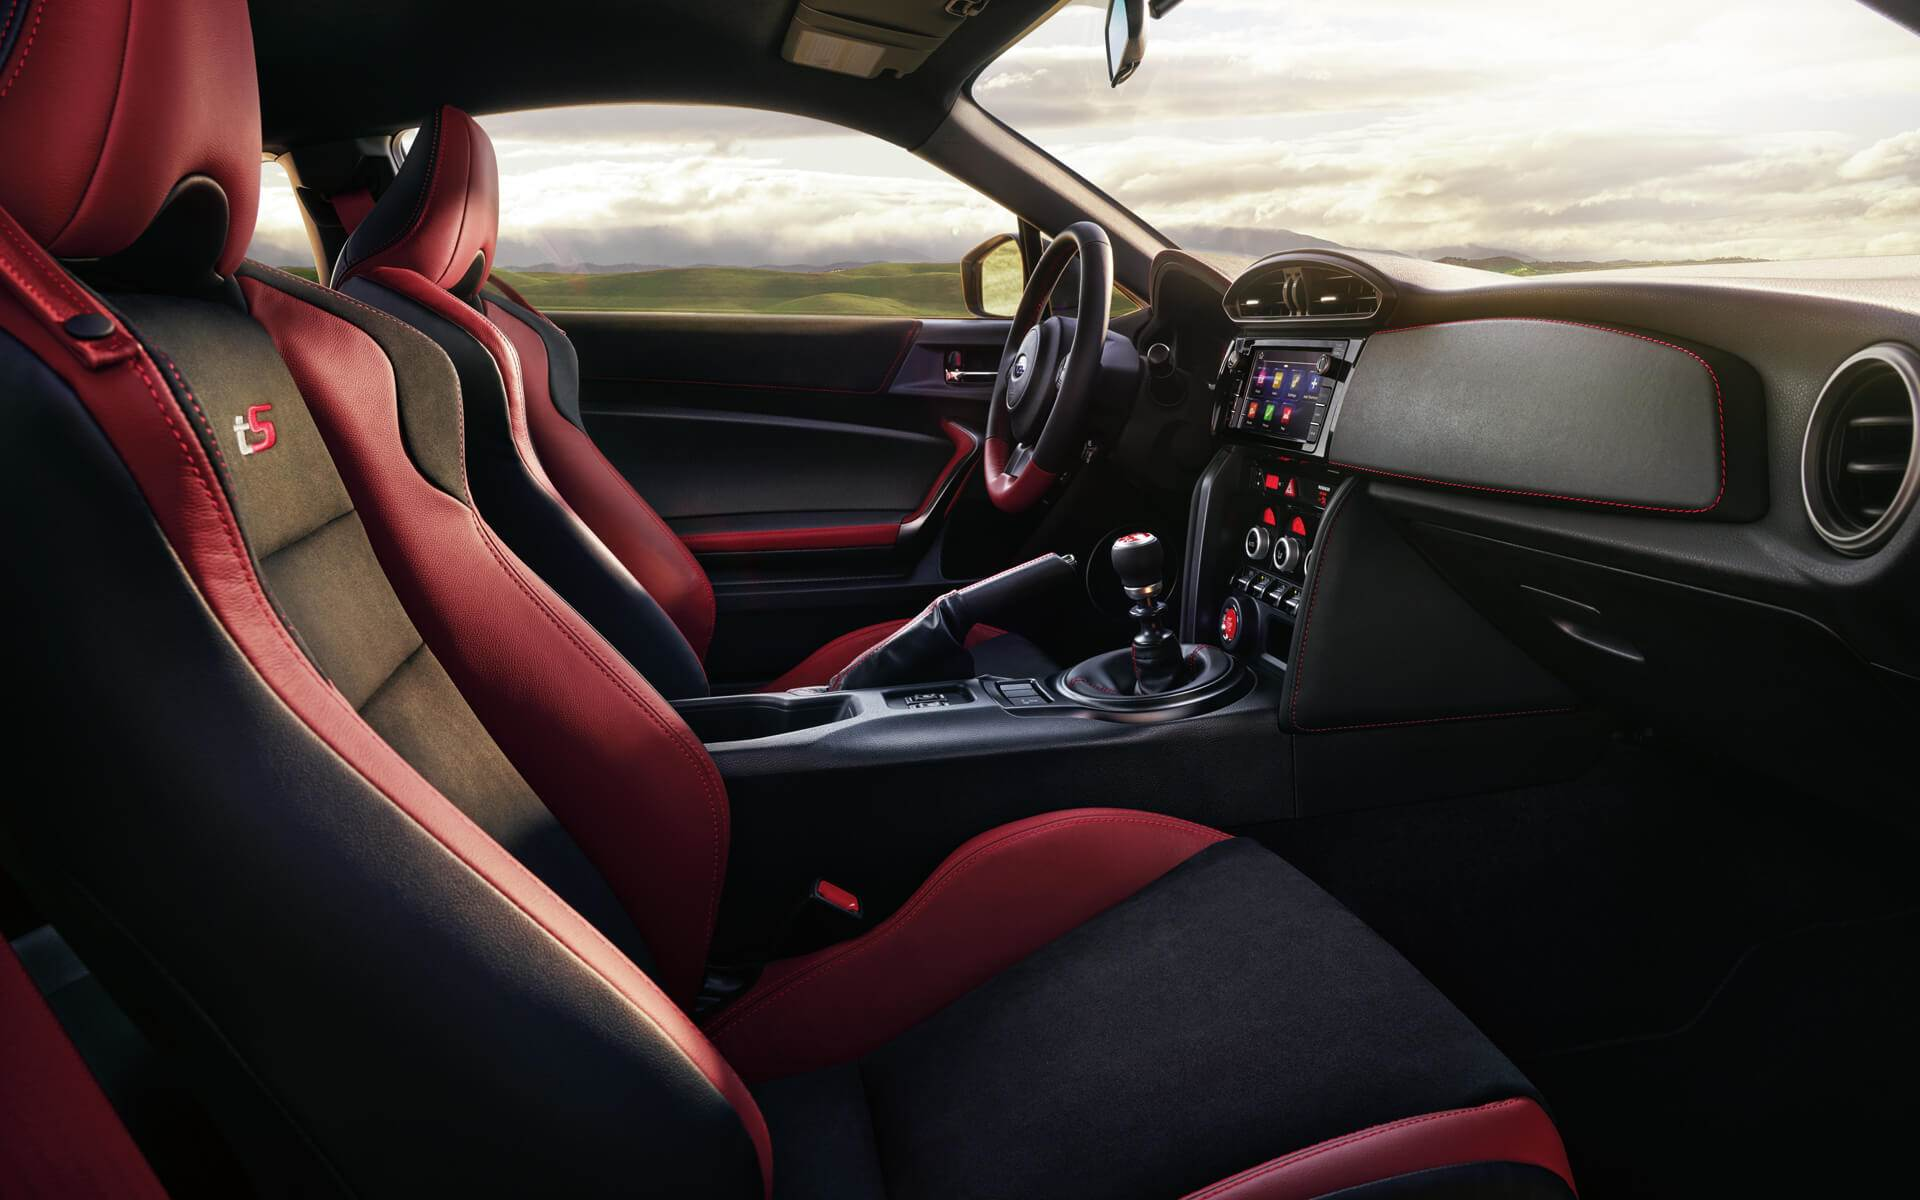 Interior of the 2018 Subaru BRZ